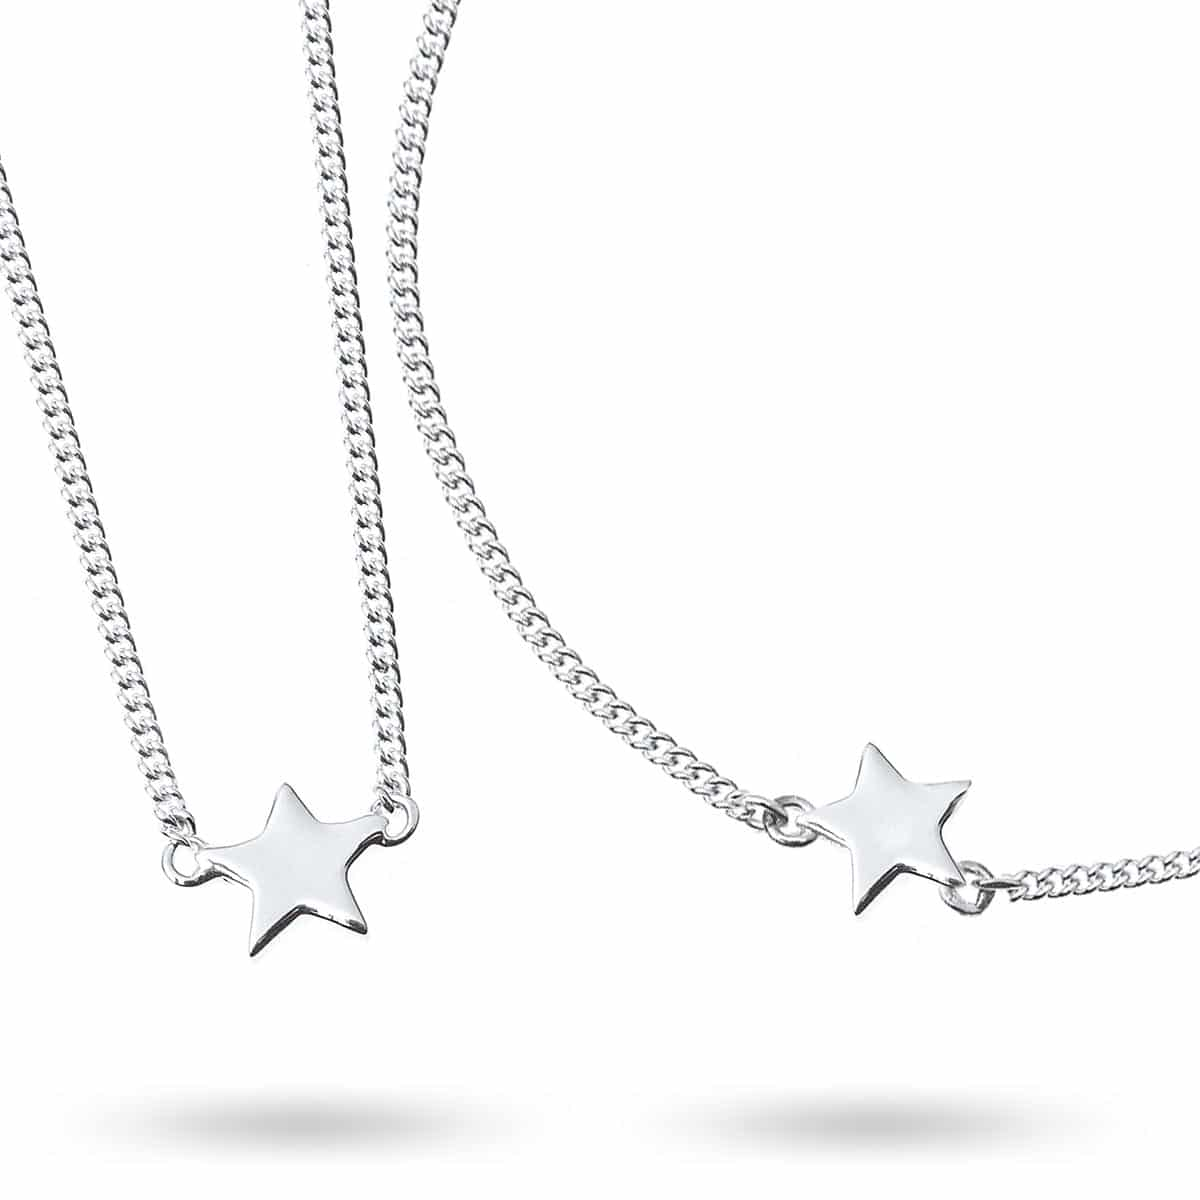 isabel-lennse-star-chain-set-silver-1